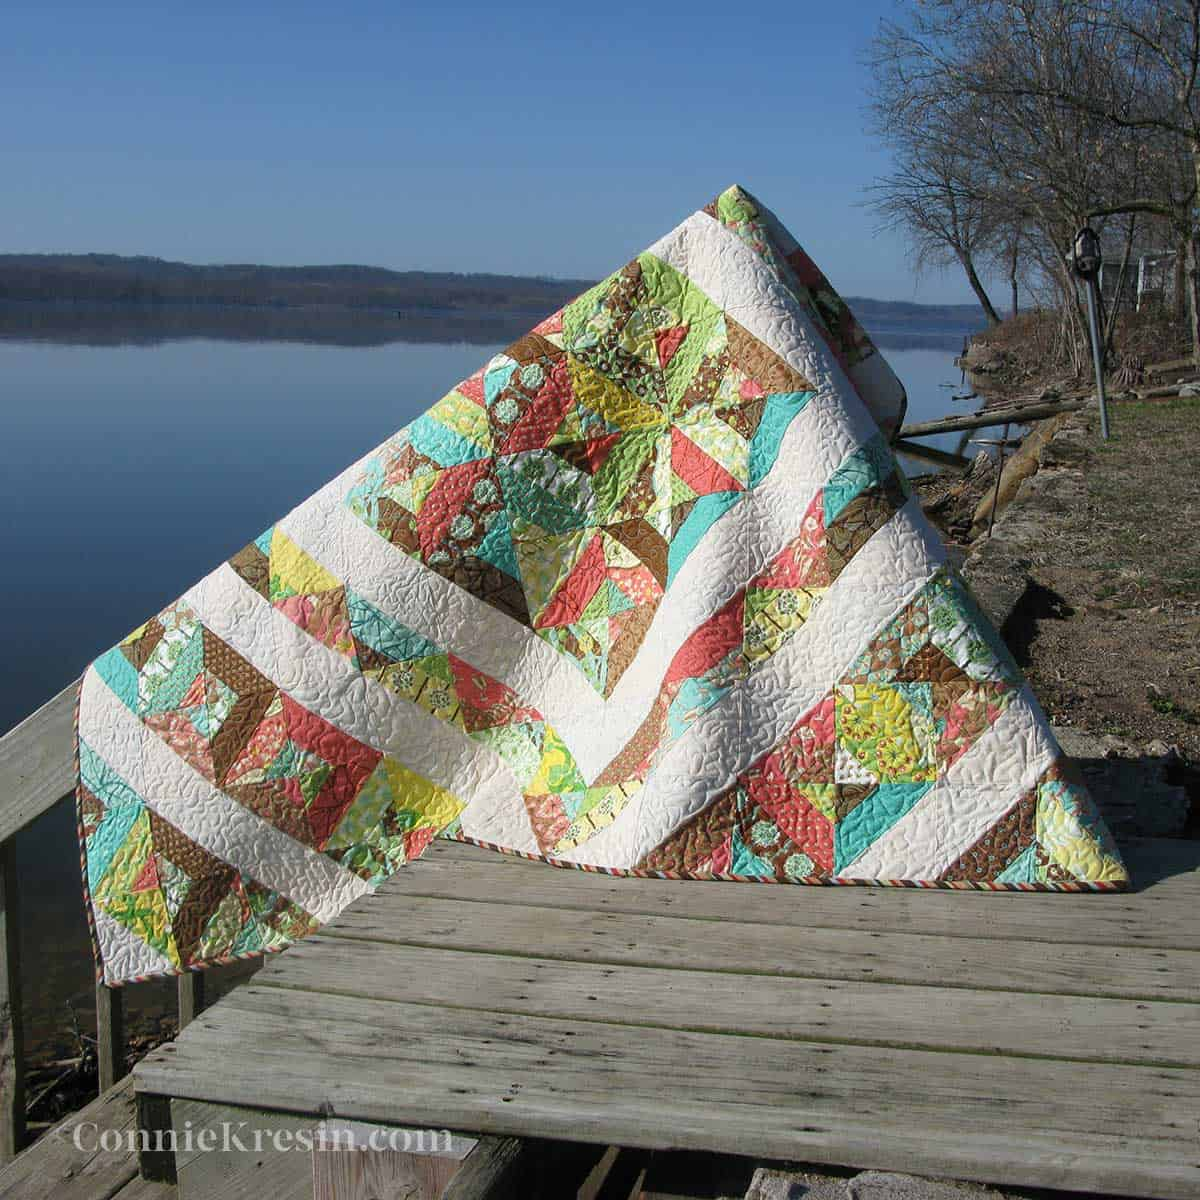 Neopolitan quilt by the riiver